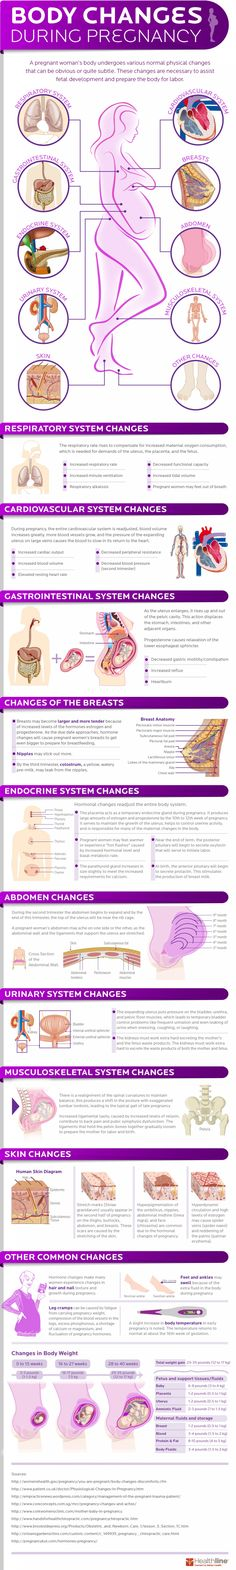 Body Changes During Pregnancy   Visual.ly